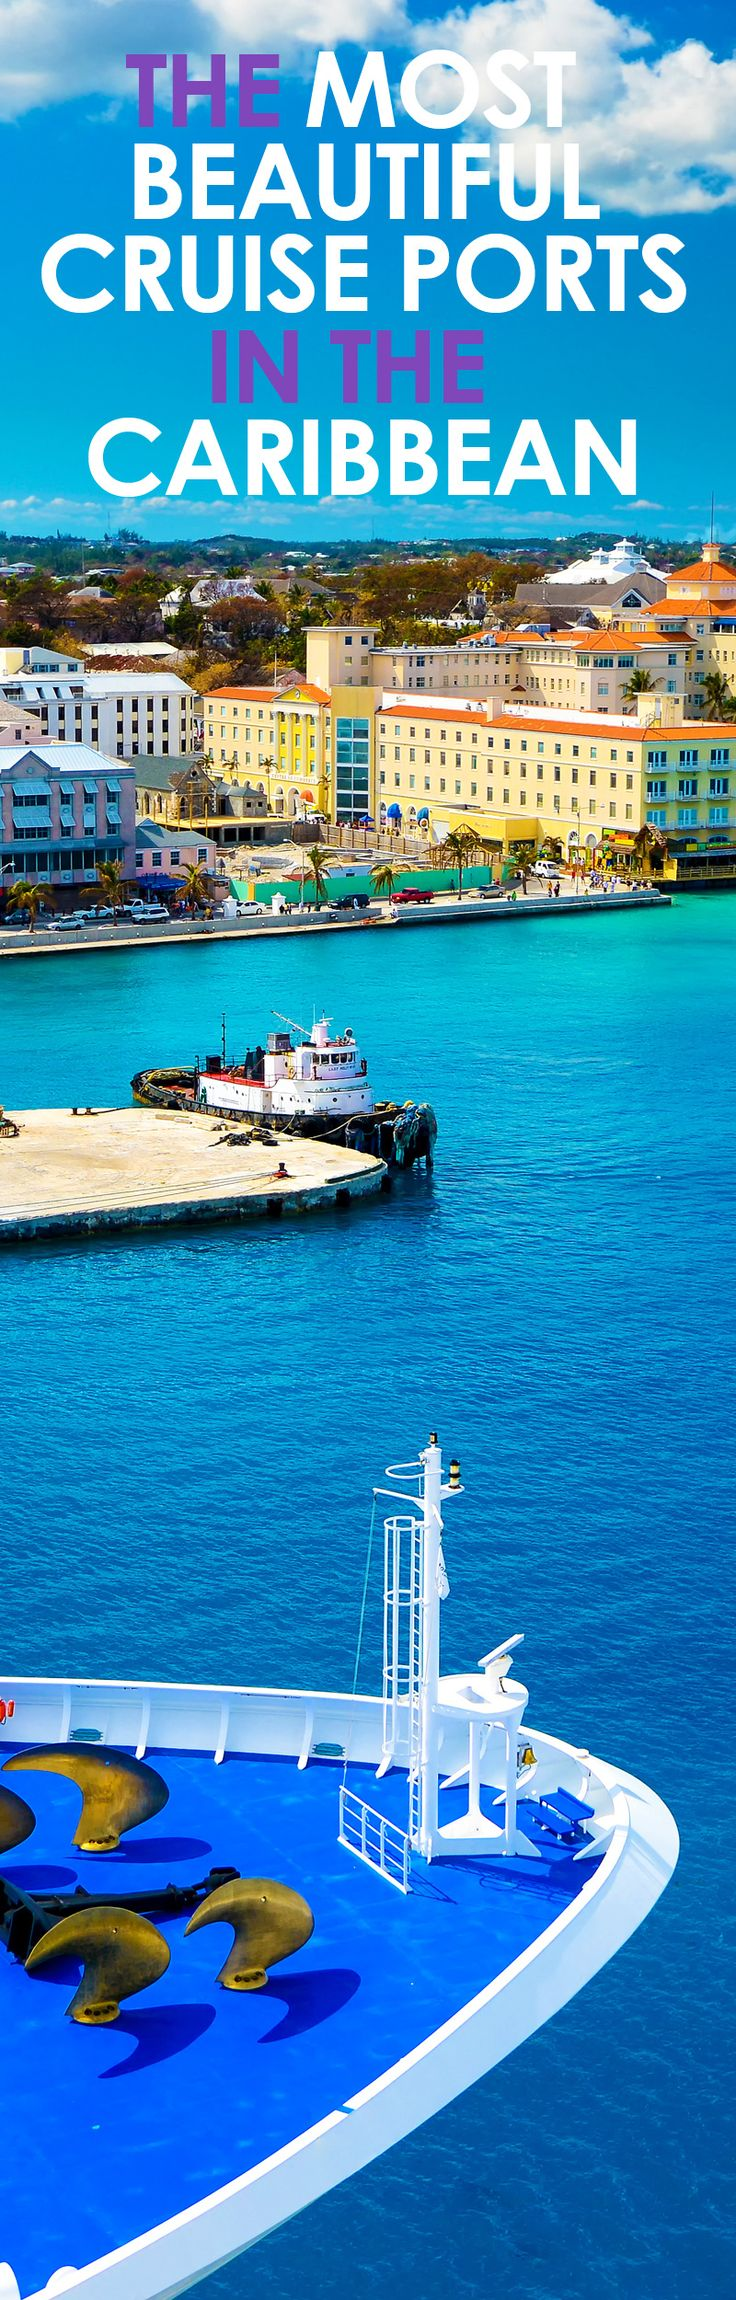 Which are the most beautiful cruise ship ports you have entered? #Cruise #Caribbean #CruiseShips #cruiseport